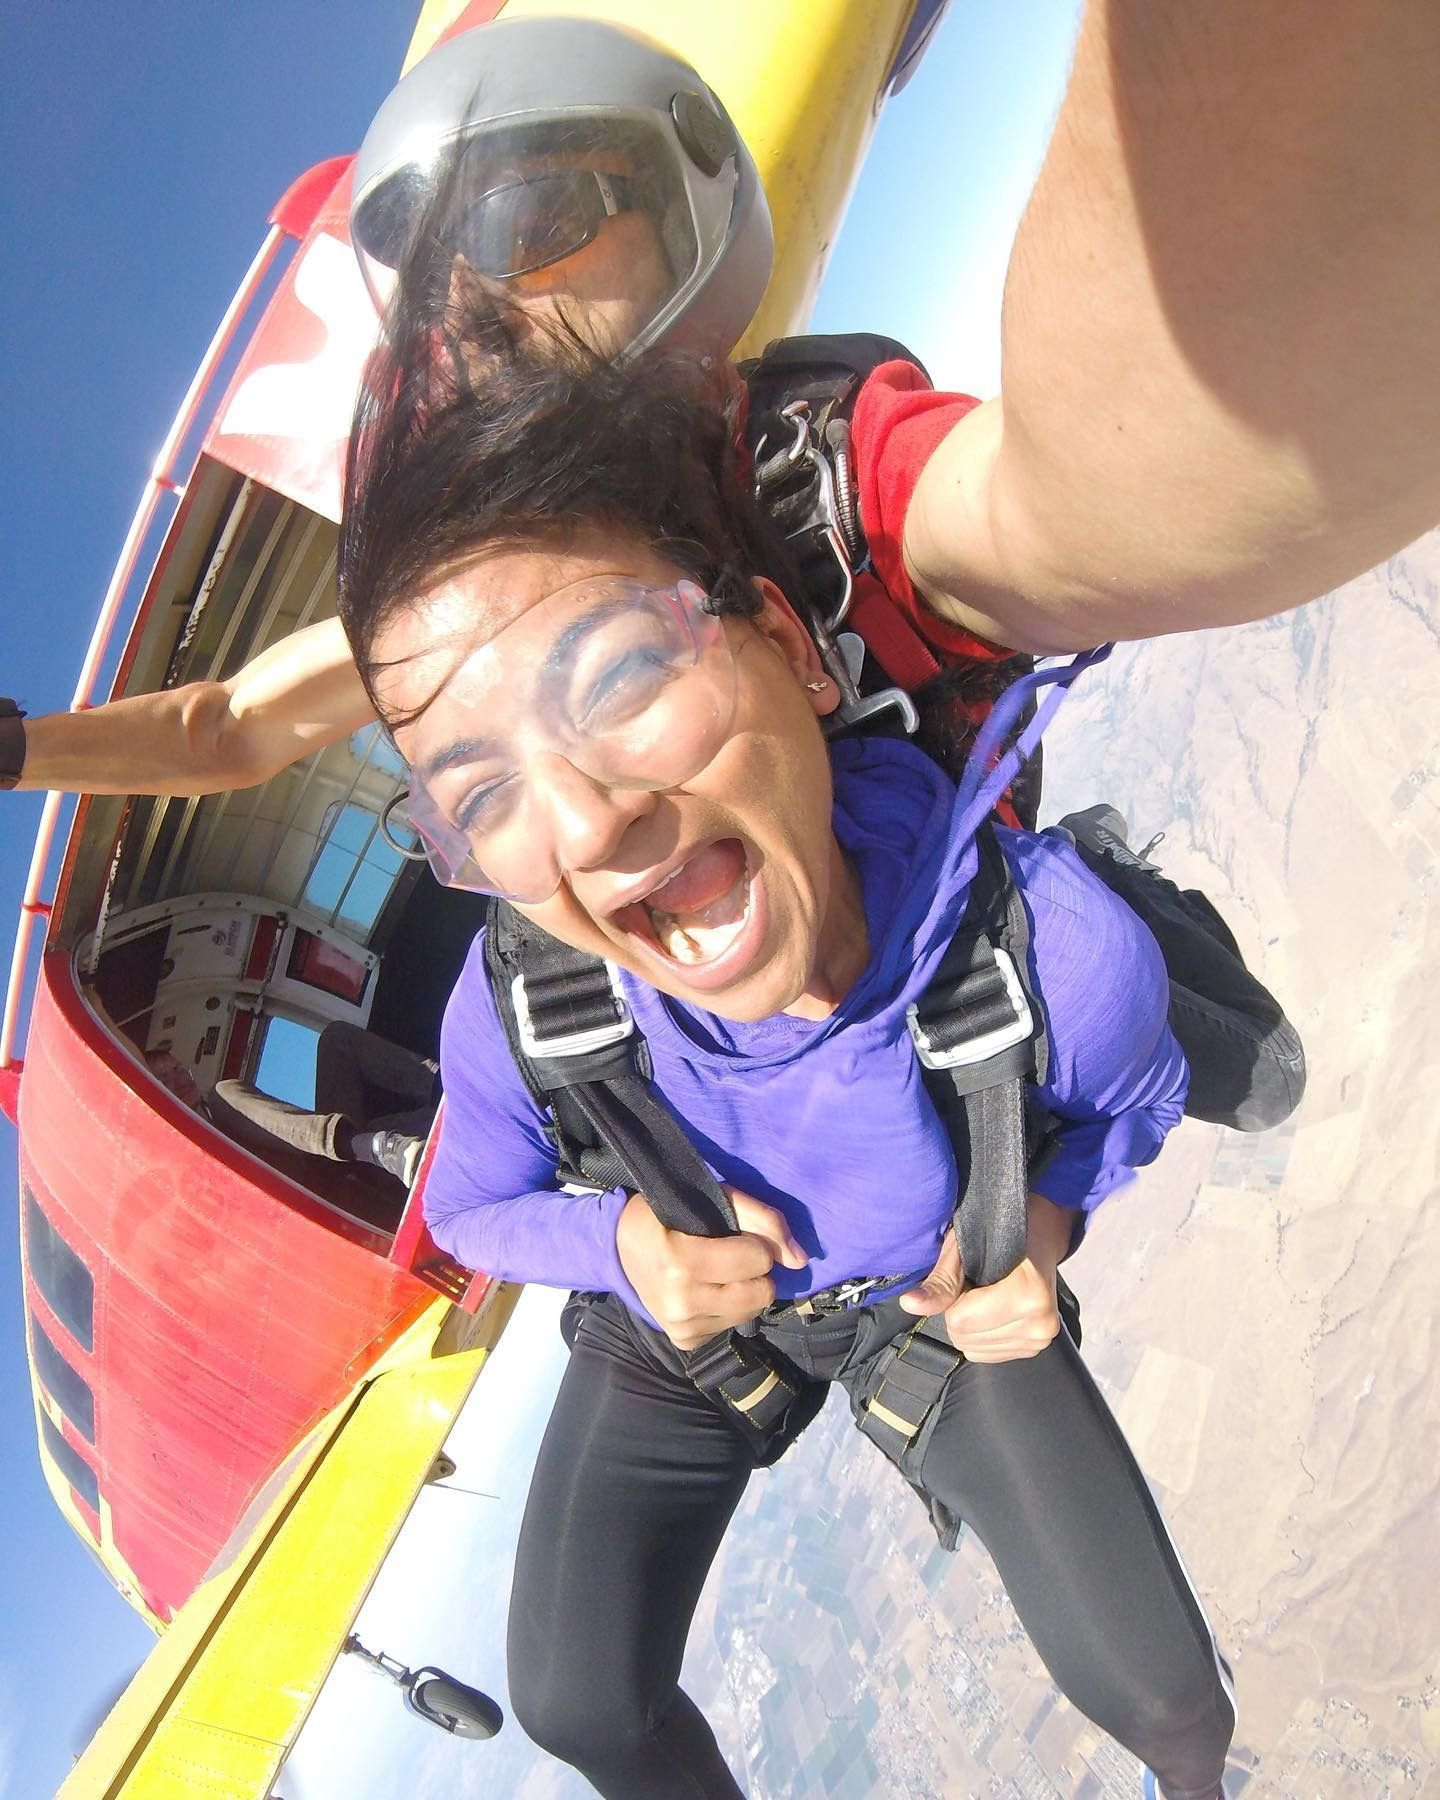 First Tandem Jump This Skydiver Looks Pretty Scared Huh Basejumping First Hanggliding Iceclimbing Jump Mounta In 2020 Tandem Jump Tandem How To Look Pretty